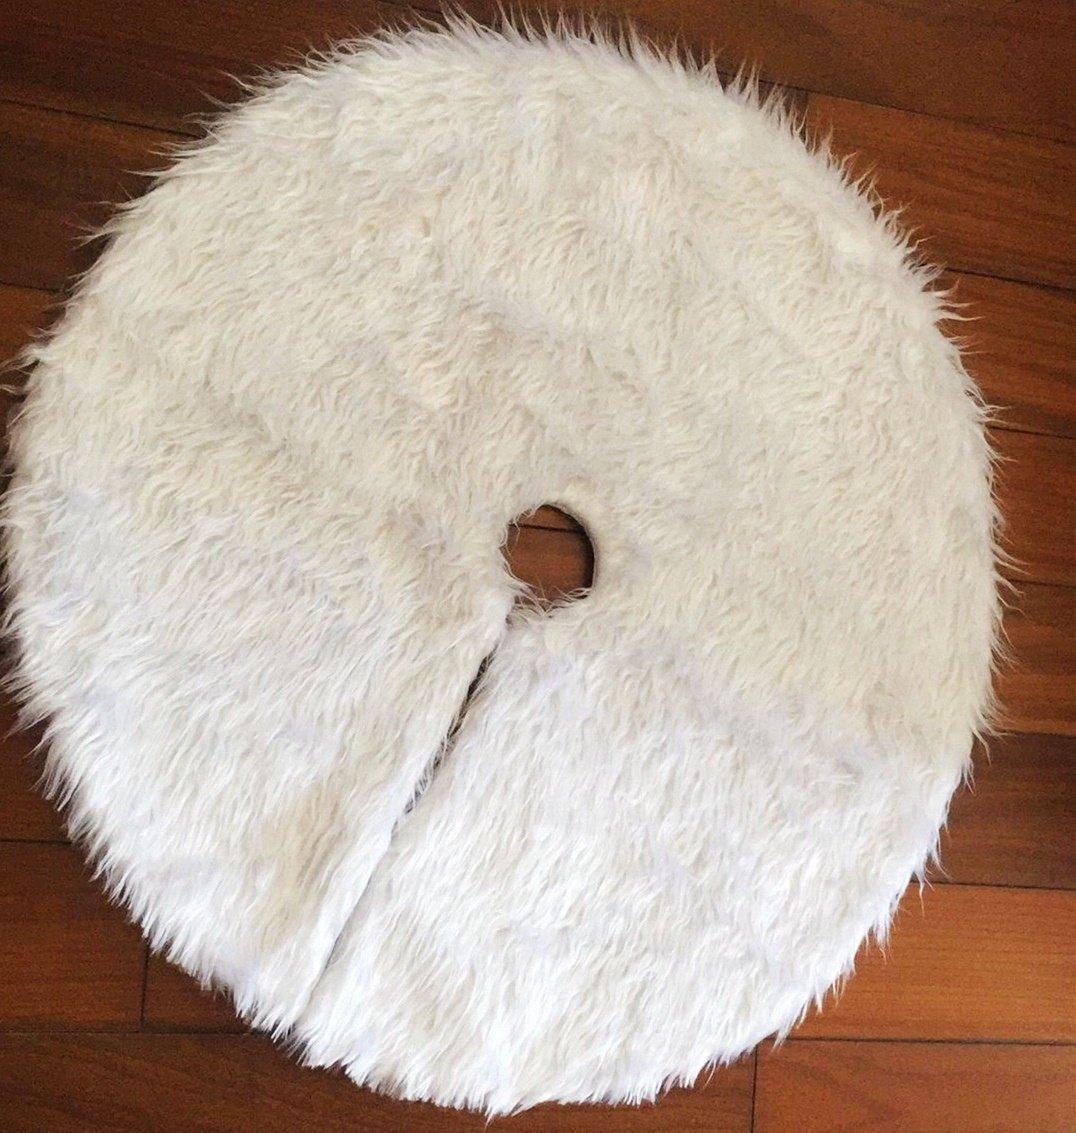 HY-MS White Faux Fur Plush Christmas Tree Skirt for Merry Christmas Party Decoration- 31 inches